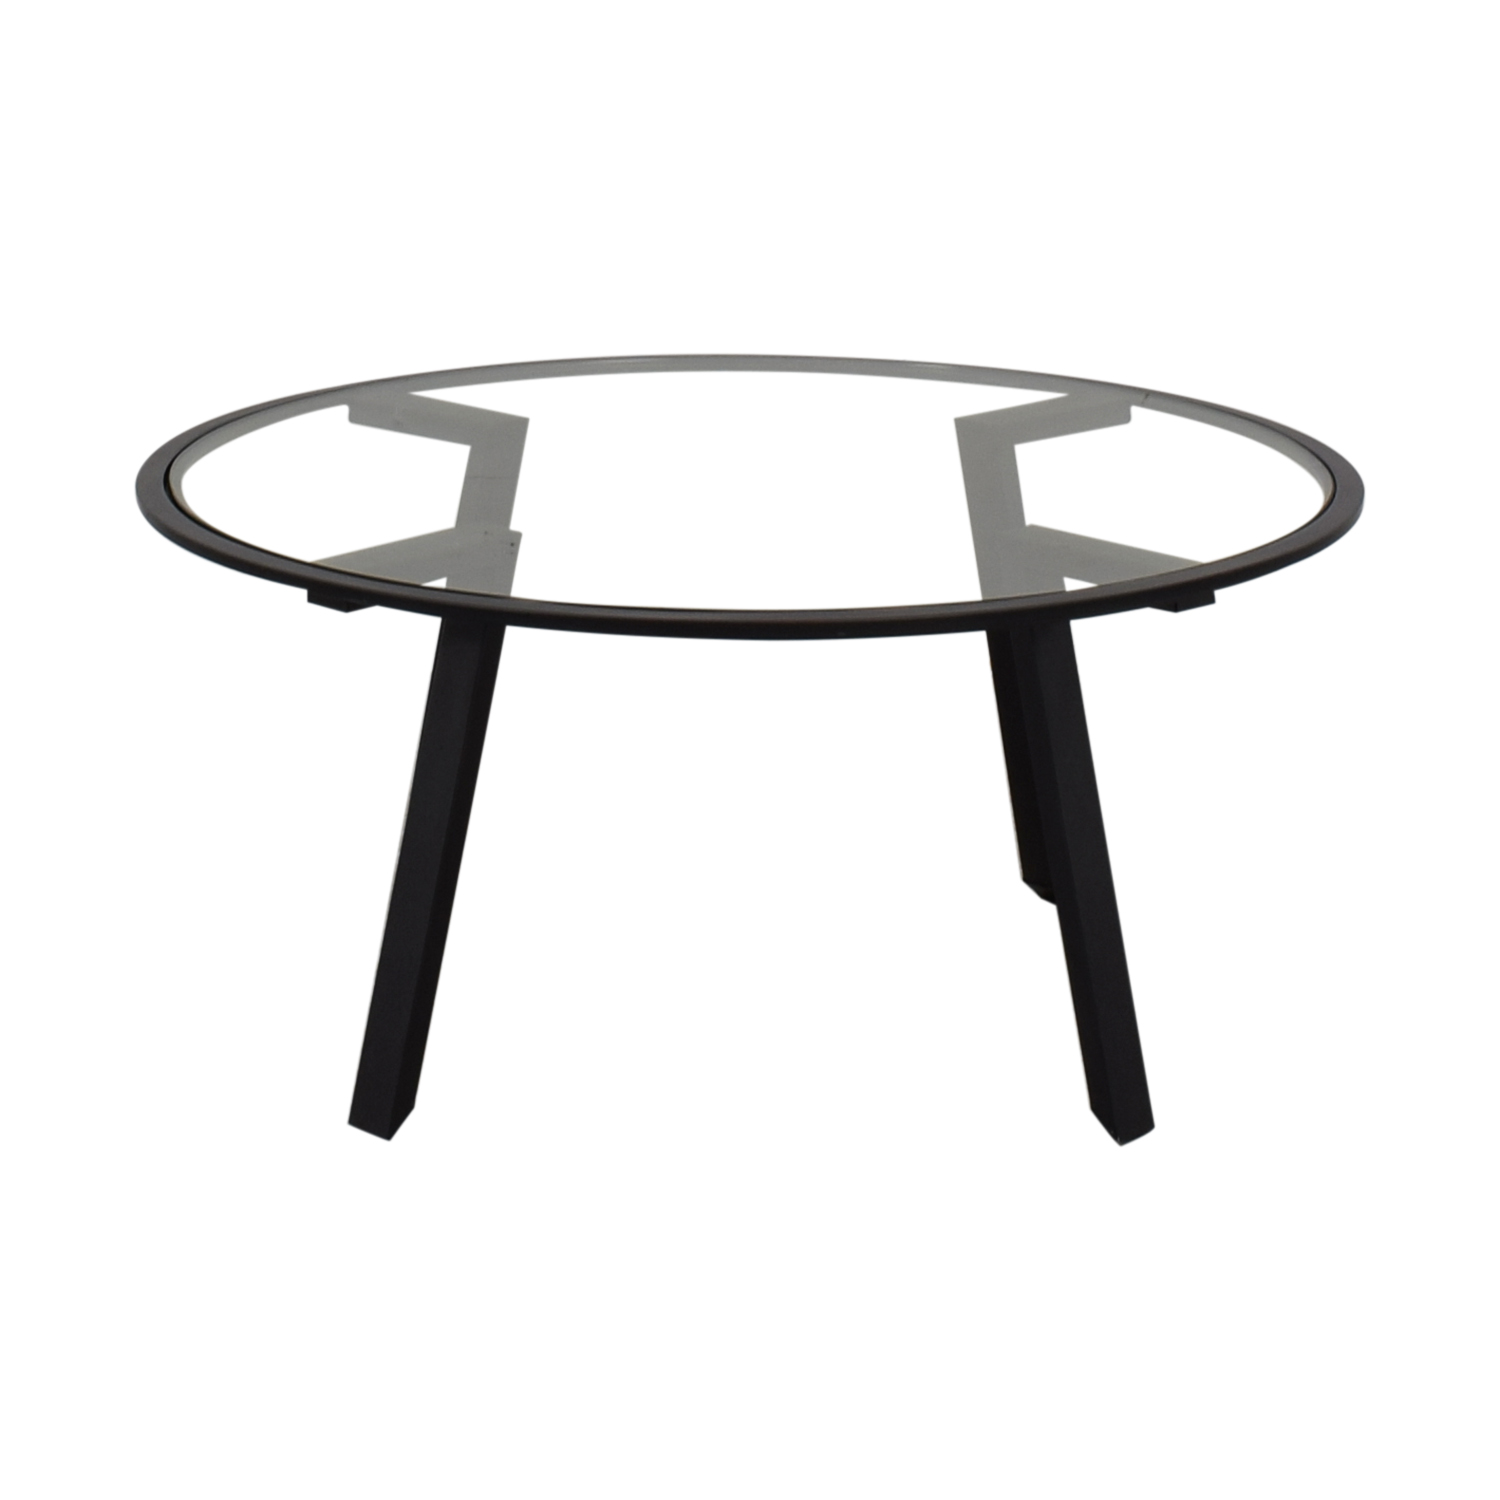 90% OFF   HomeGoods HomeGoods Round Glass Coffee Table / Tables